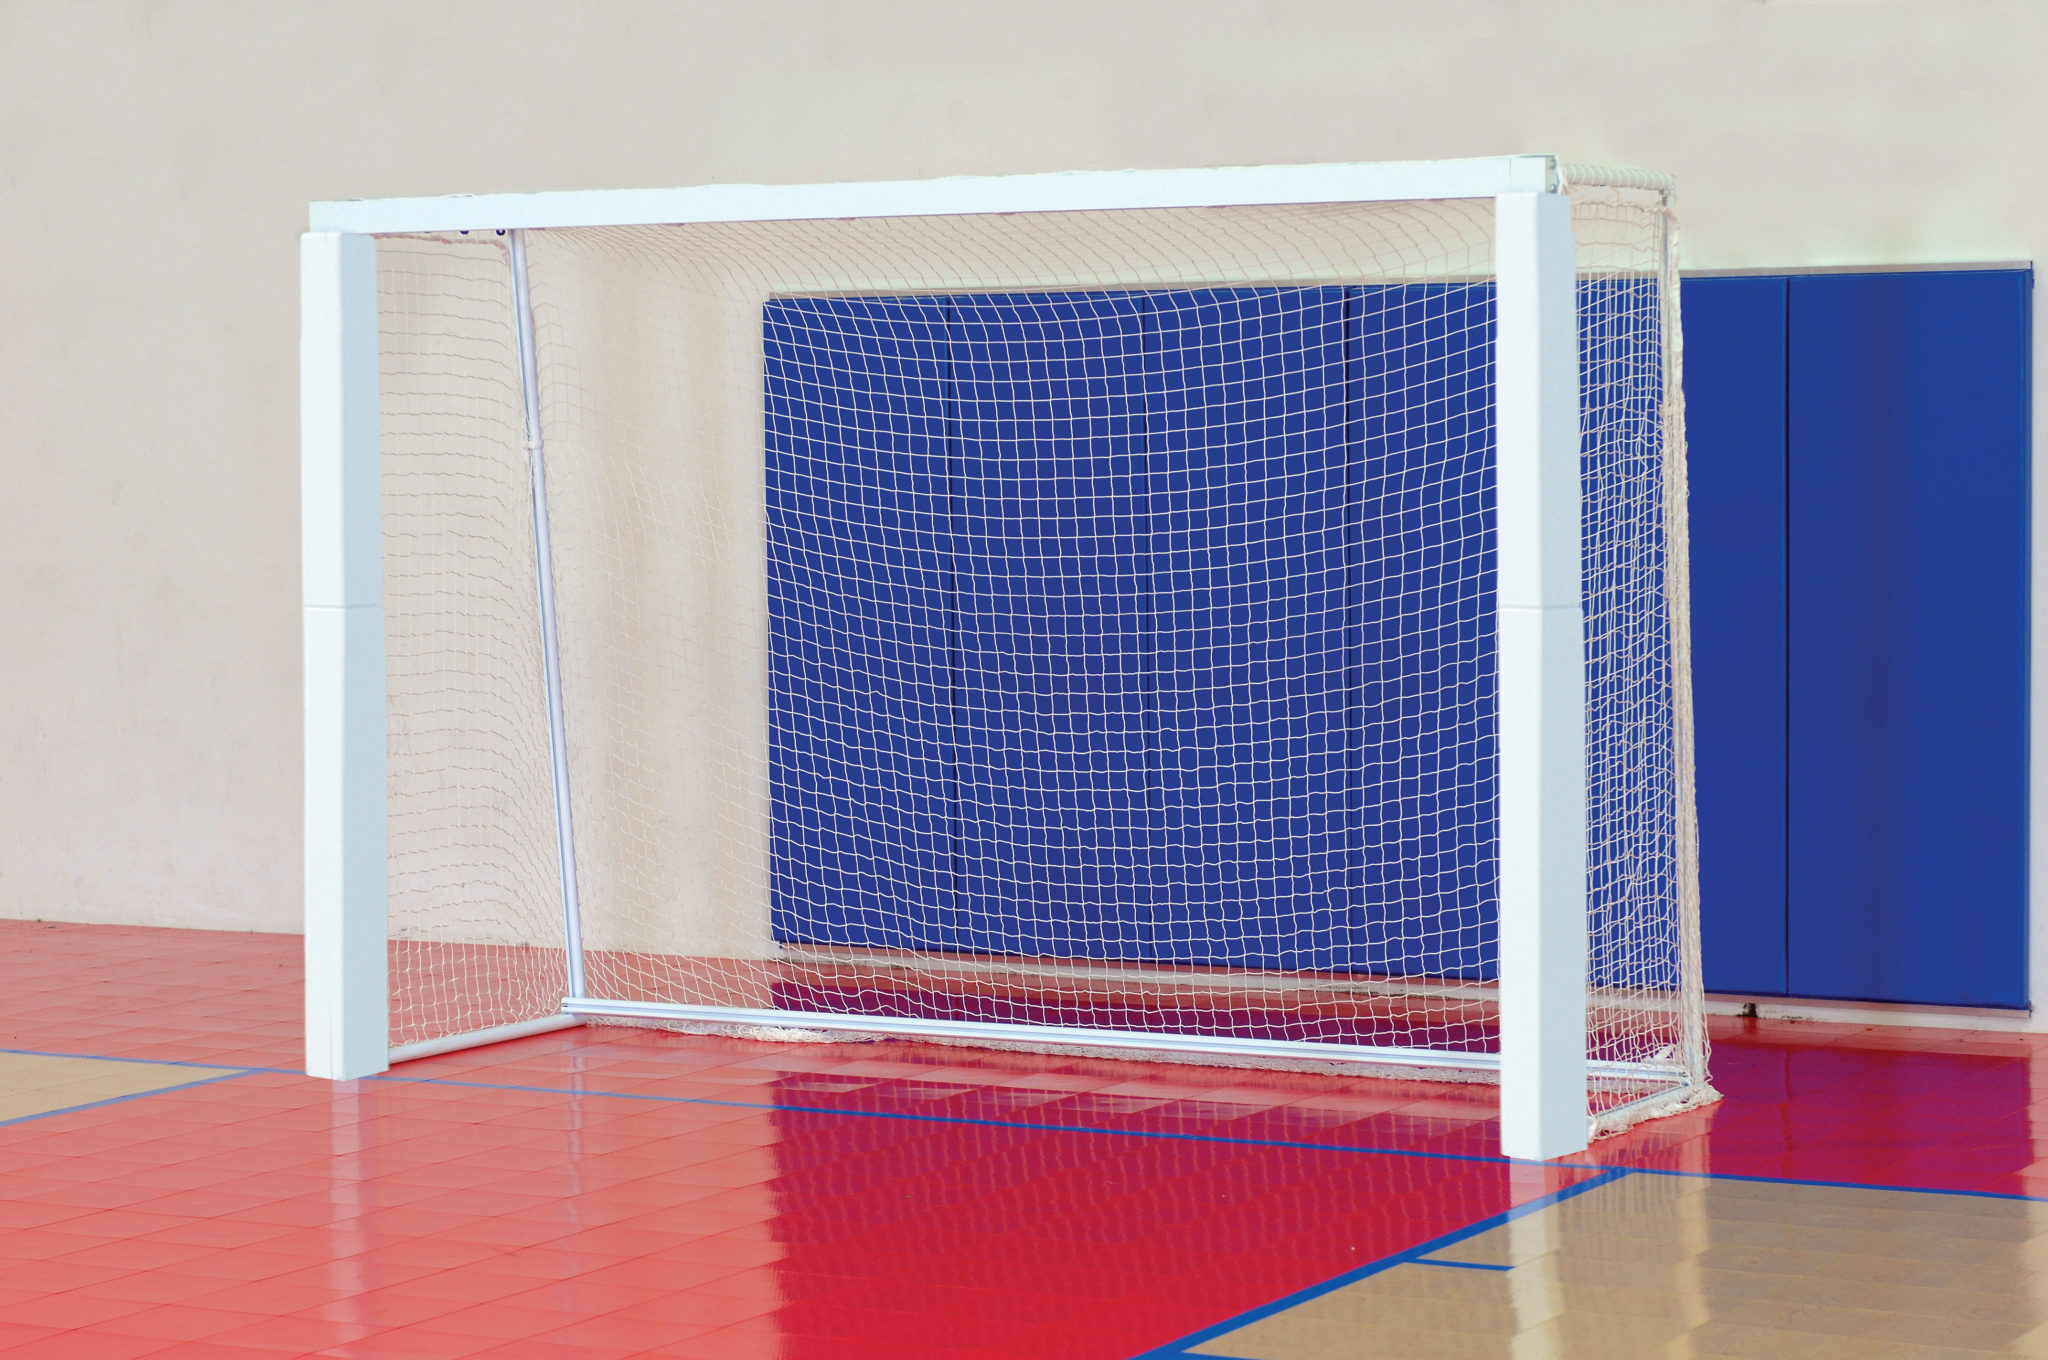 Official Futsal Goals With Nets - Bison, Inc.